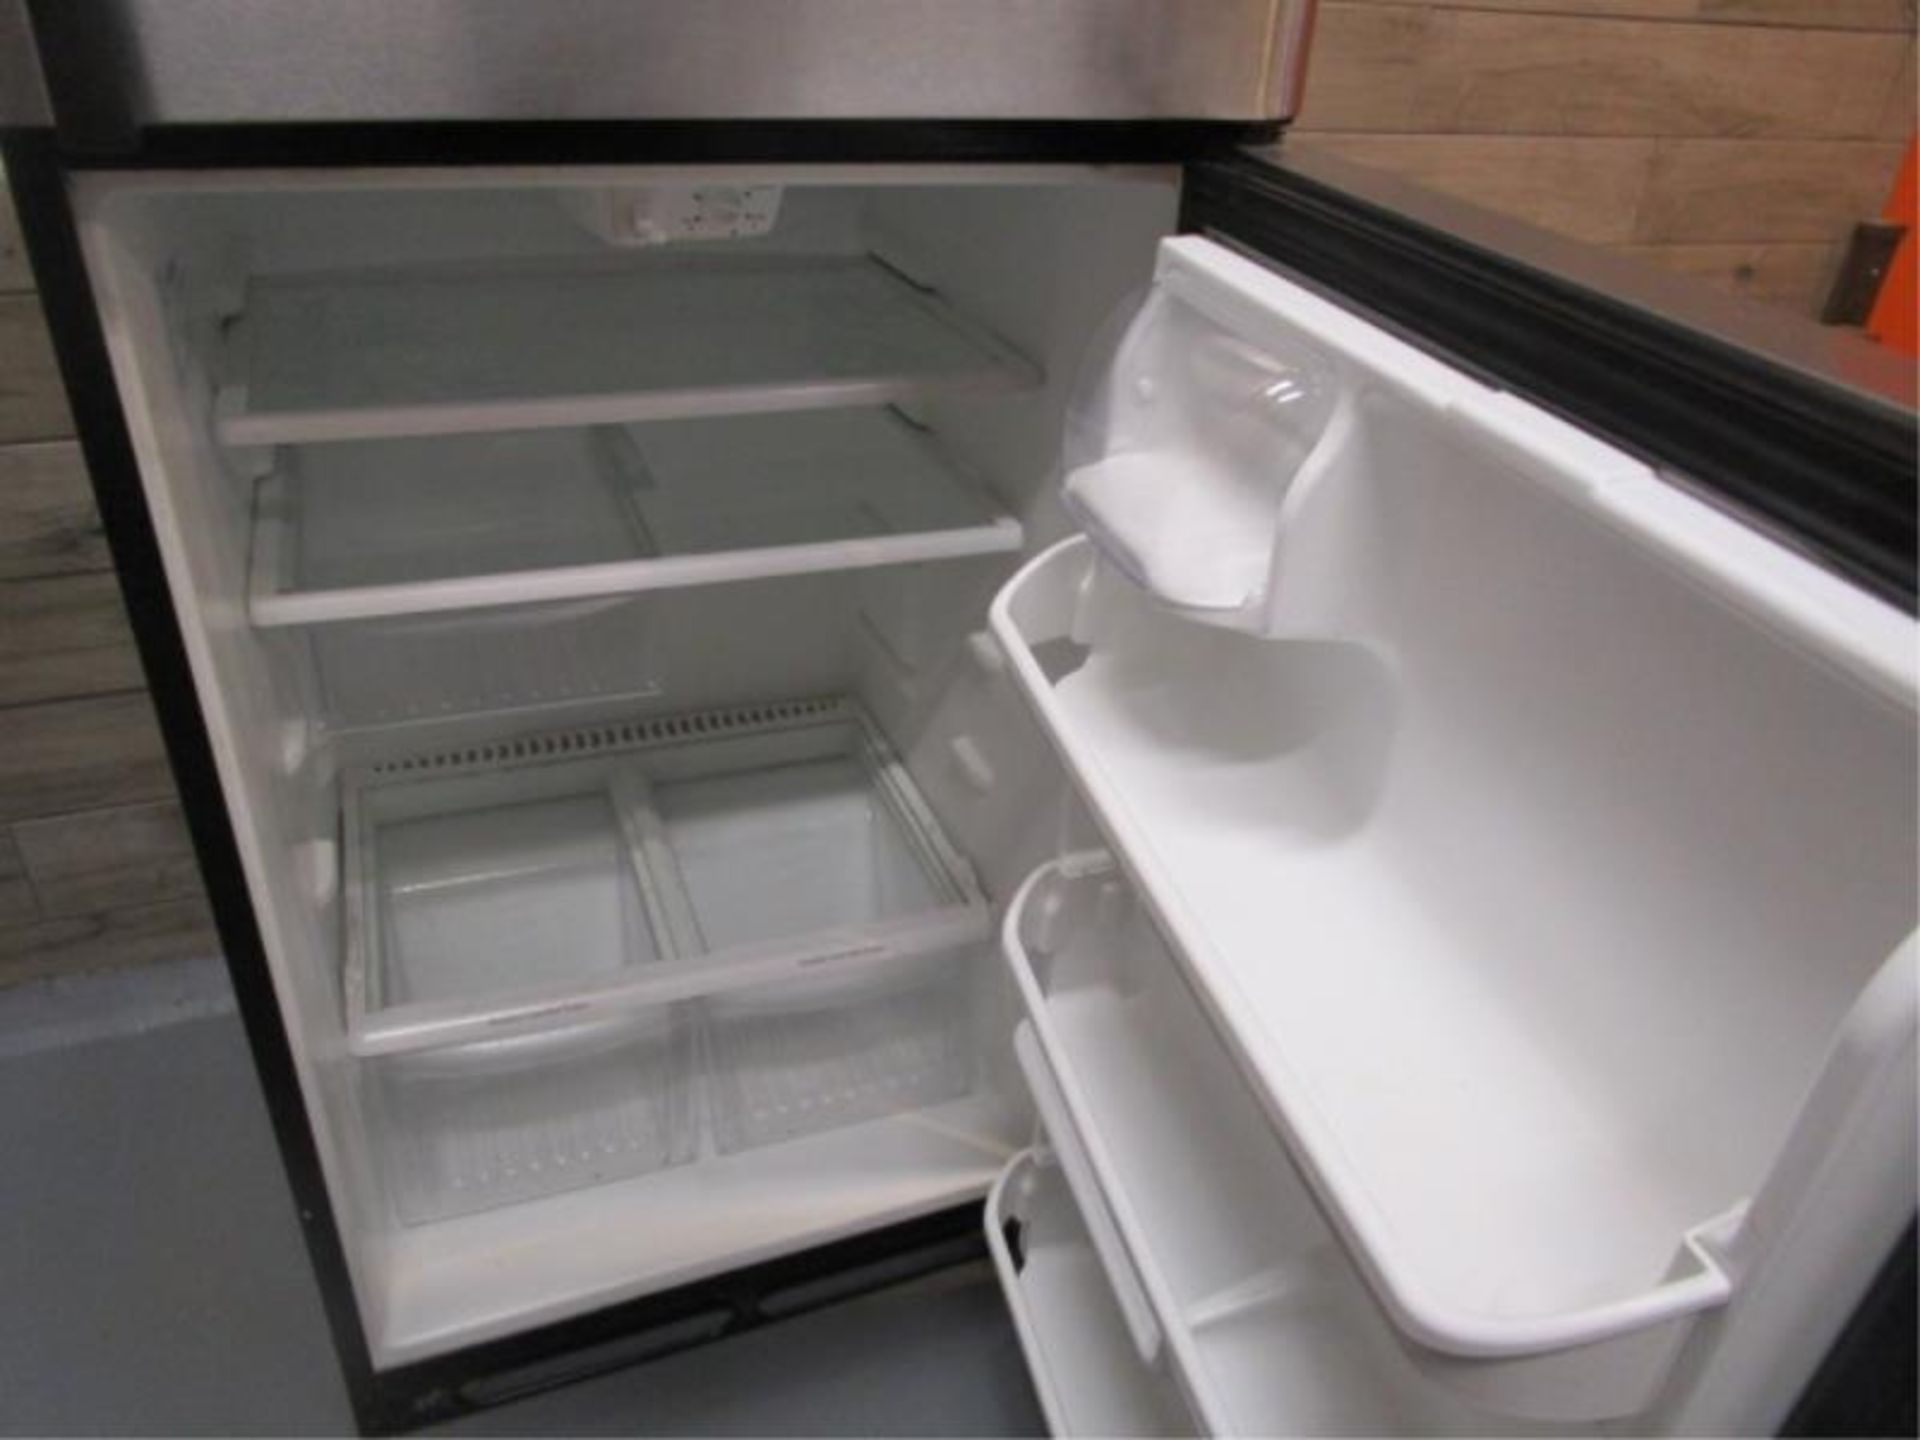 Lot 15 - Kenmore Stainless Steel & Black Enamel Refrigerator, Made 2007, Model: 253-6482340E, SN: BA74023935